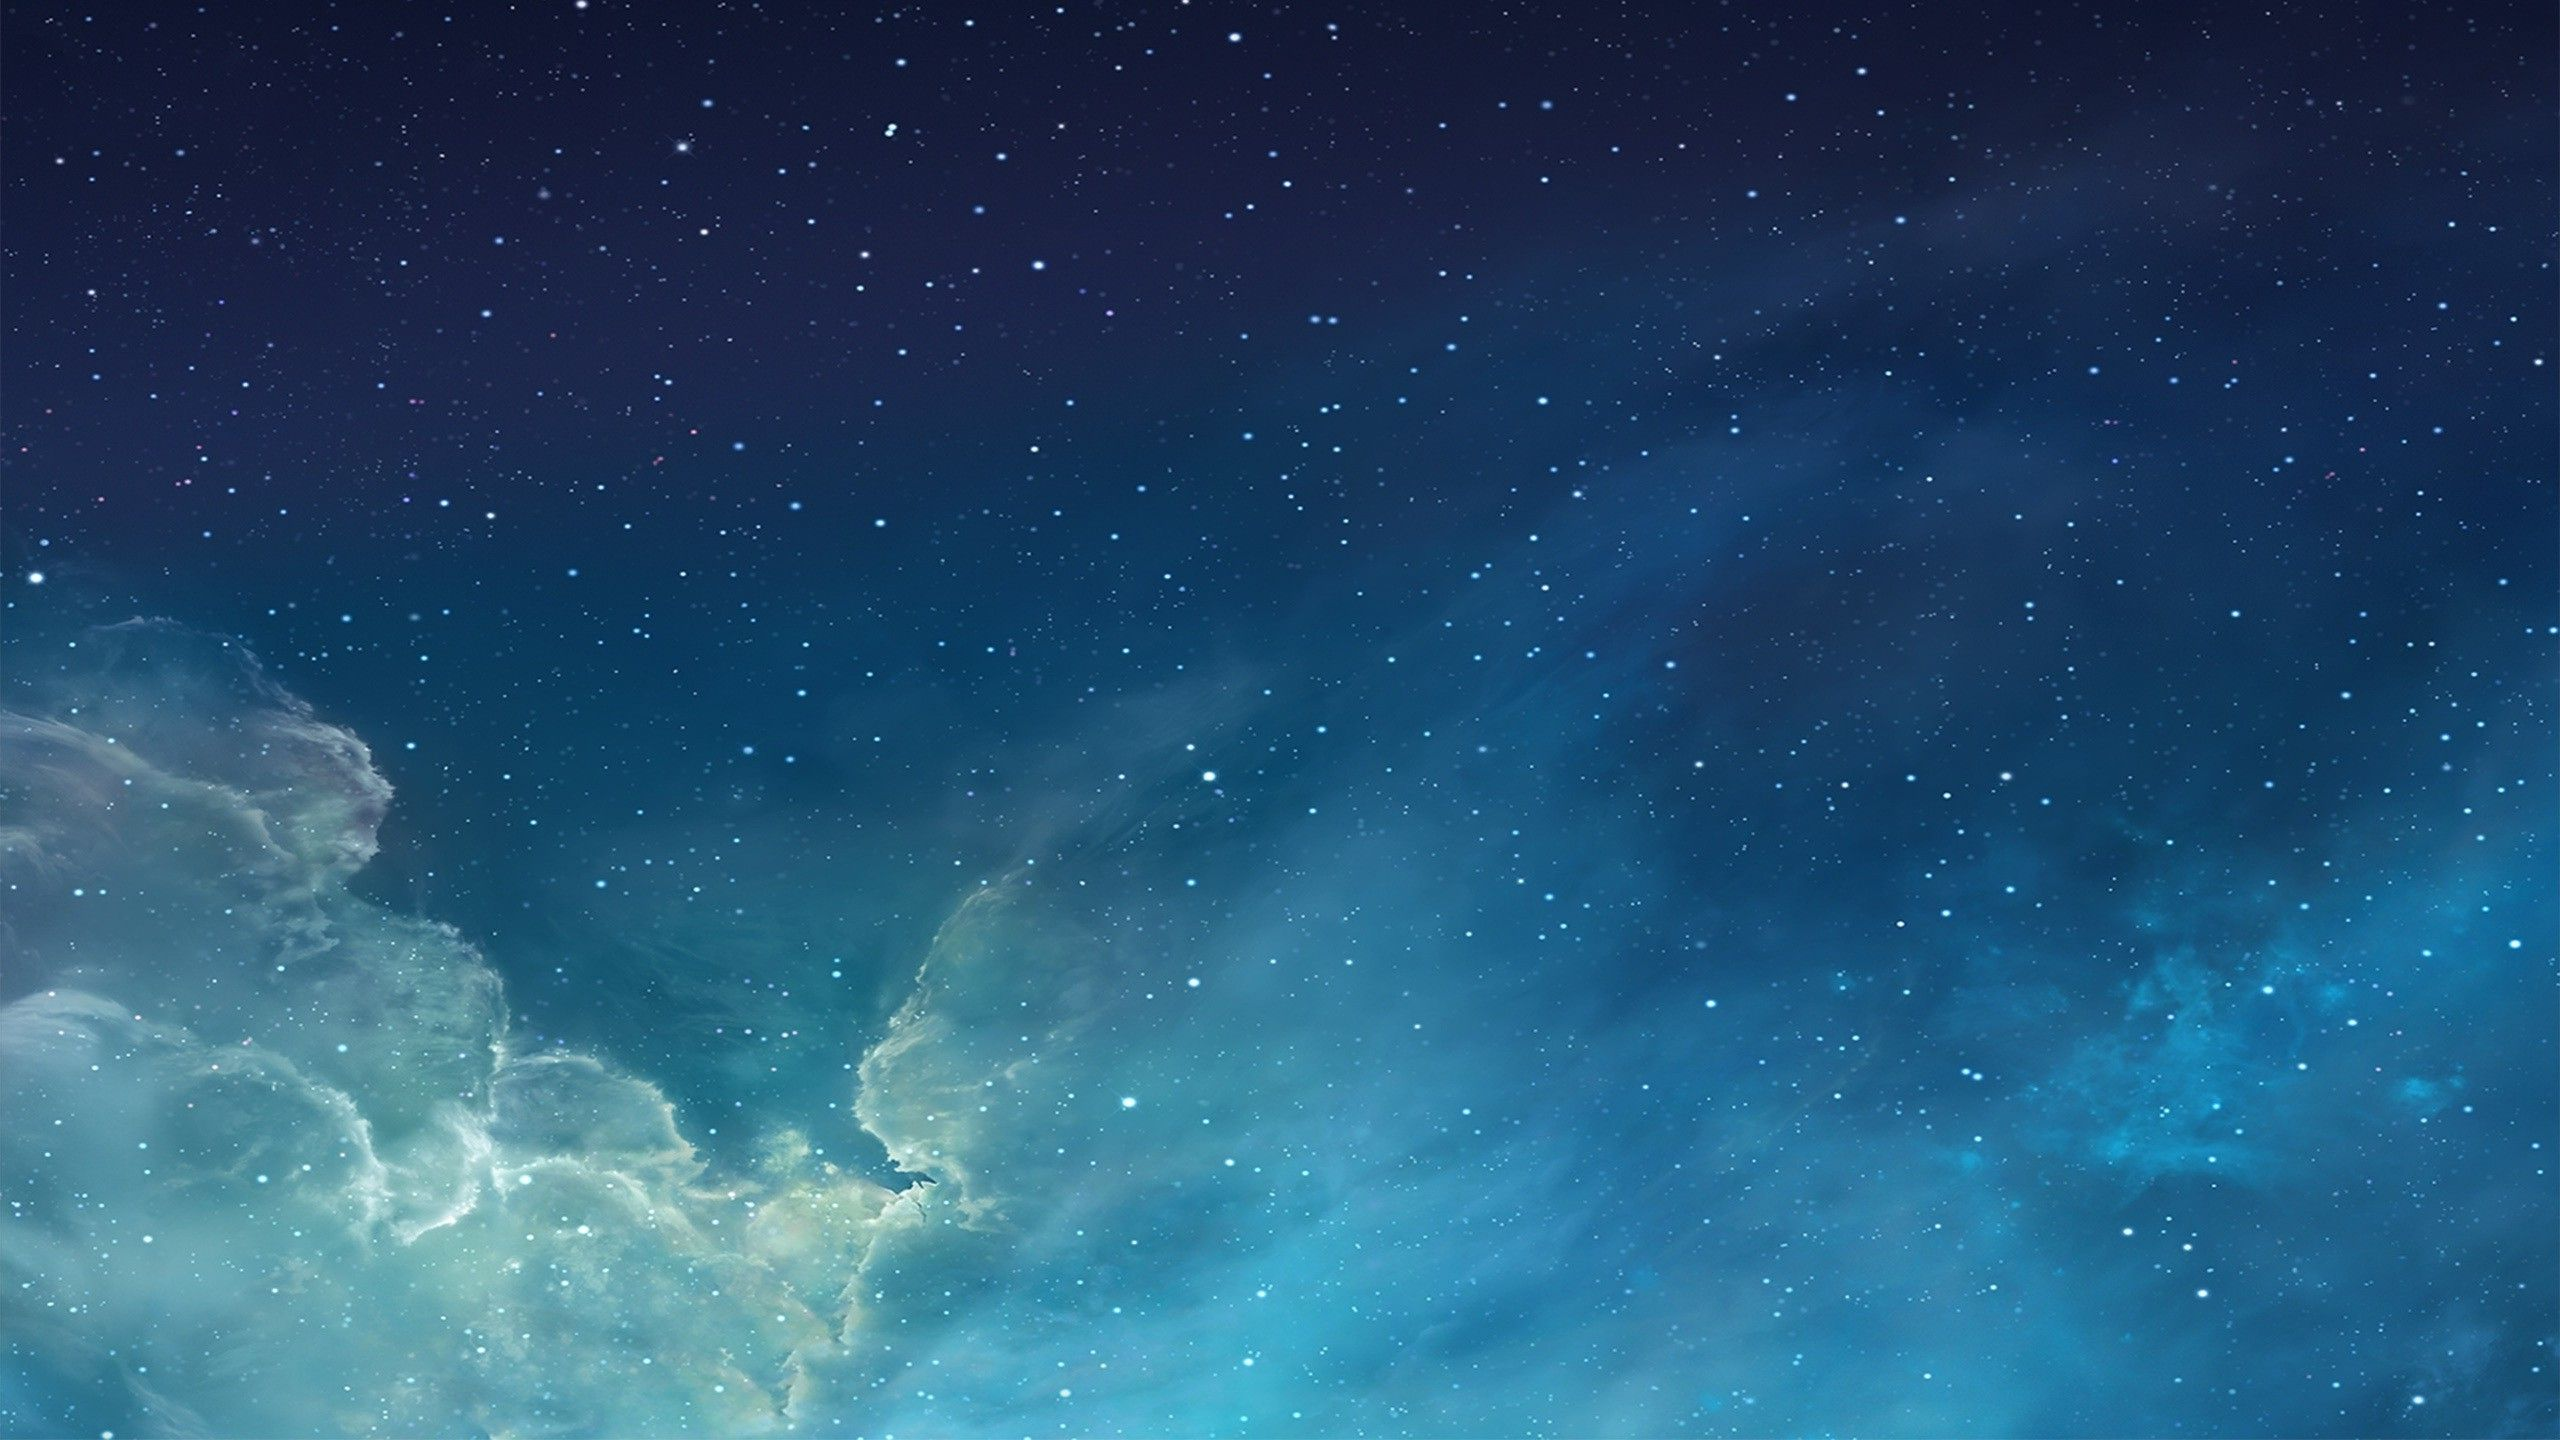 Stars Wallpapers, Pictures, Images 2560x1440